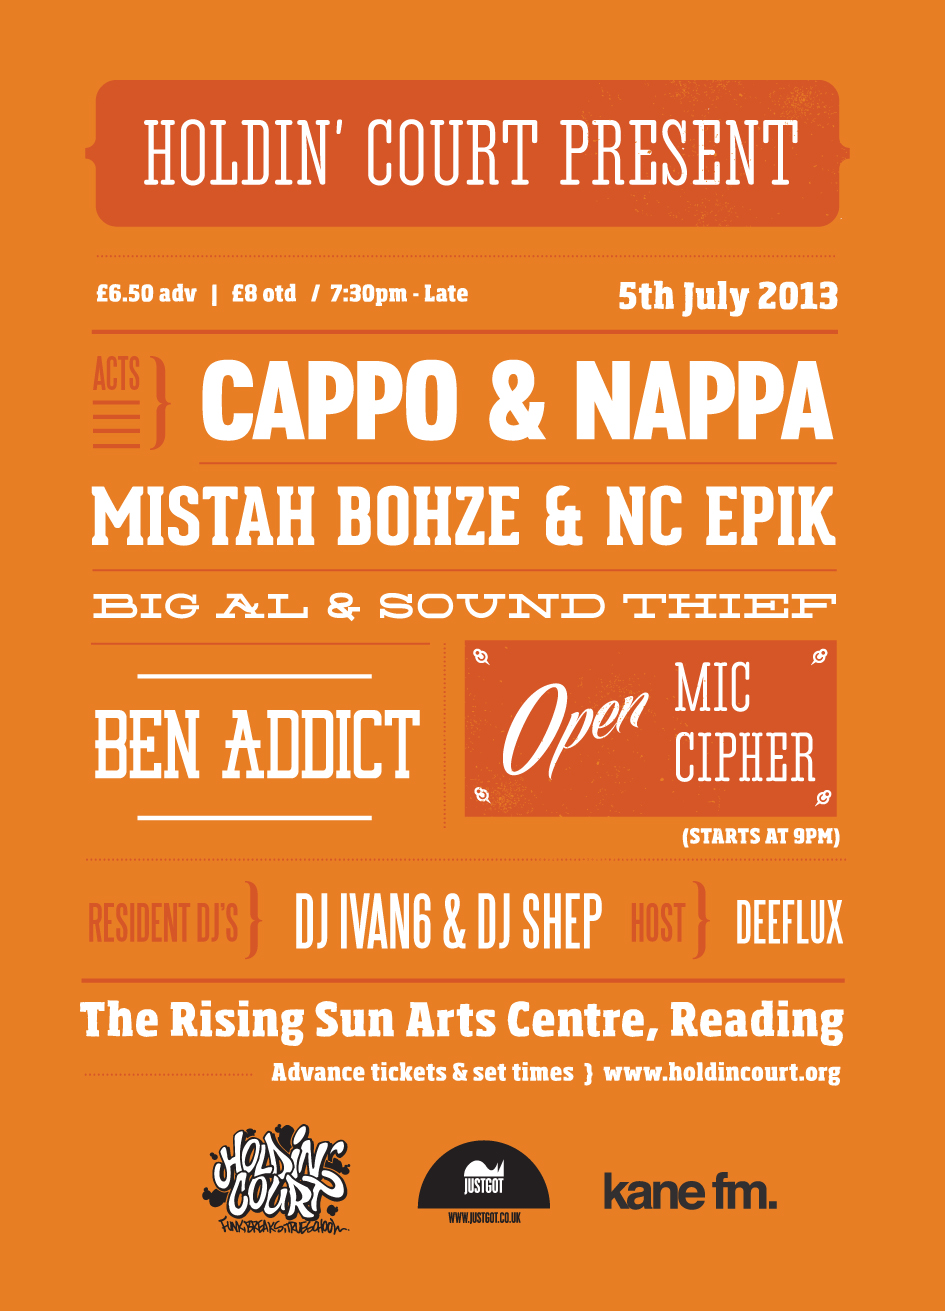 Holdin' Court : Cappo & Nappa / Mistah Bohze & NC Epik / Big Al & Sound Theif & Ben Addict + Resident DJ's Ivan6 & Shep.    The Rising Sun Arts Centre, Reading.    8pm-12am    To purchase tickets to our event in Reading this July, Click on the flyer!!